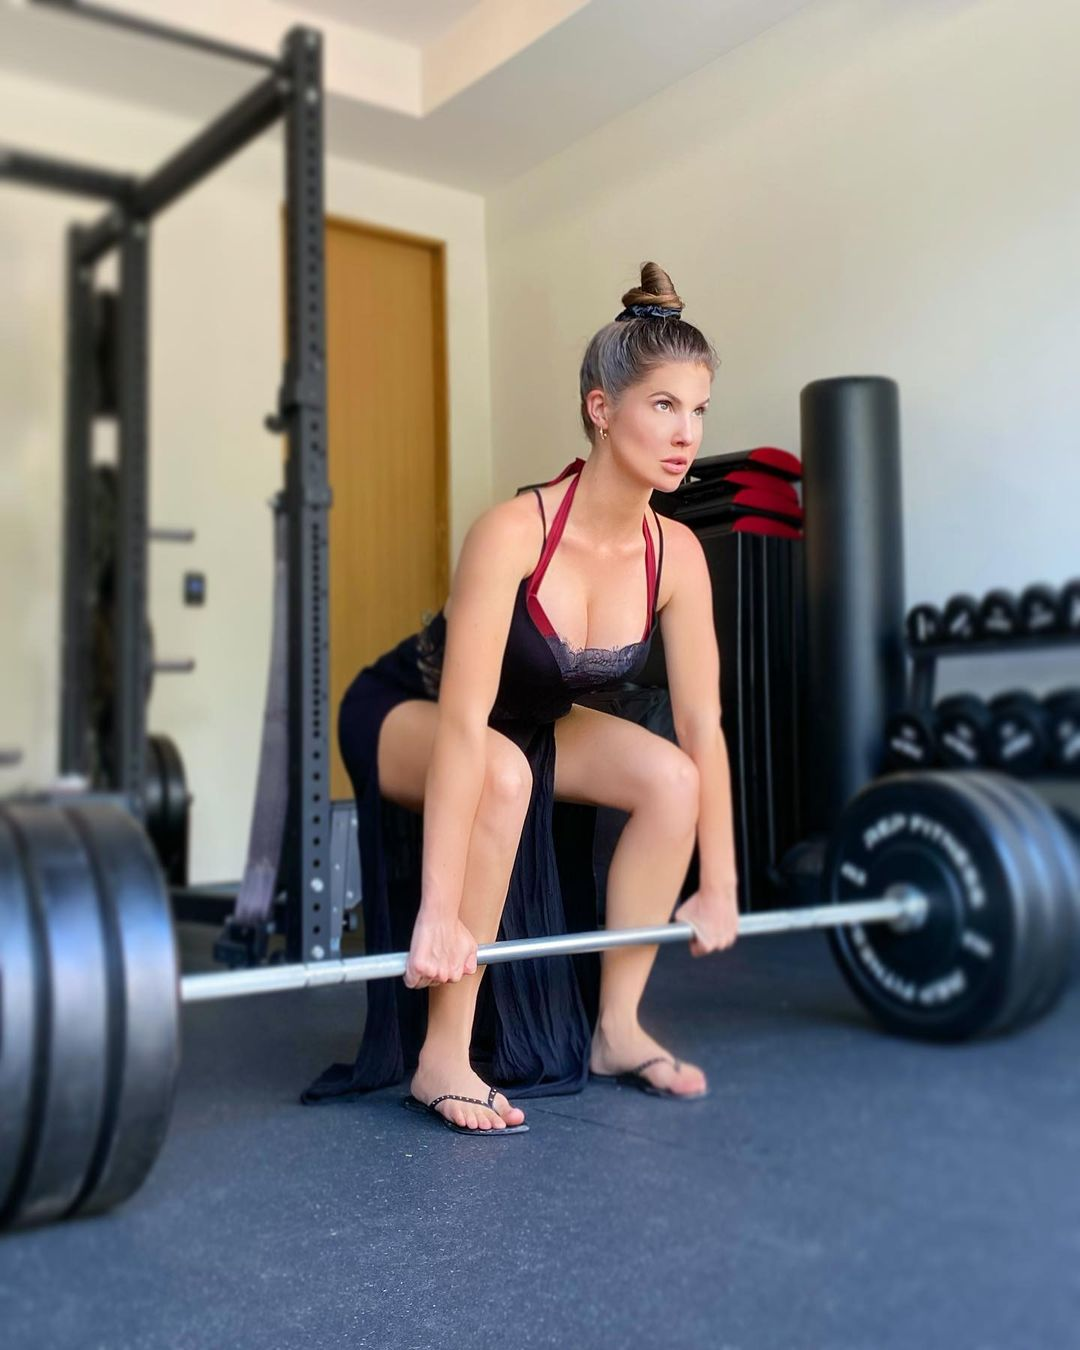 Hot photos of Playboy model and actress Amanda Cerny will take your breath away 17